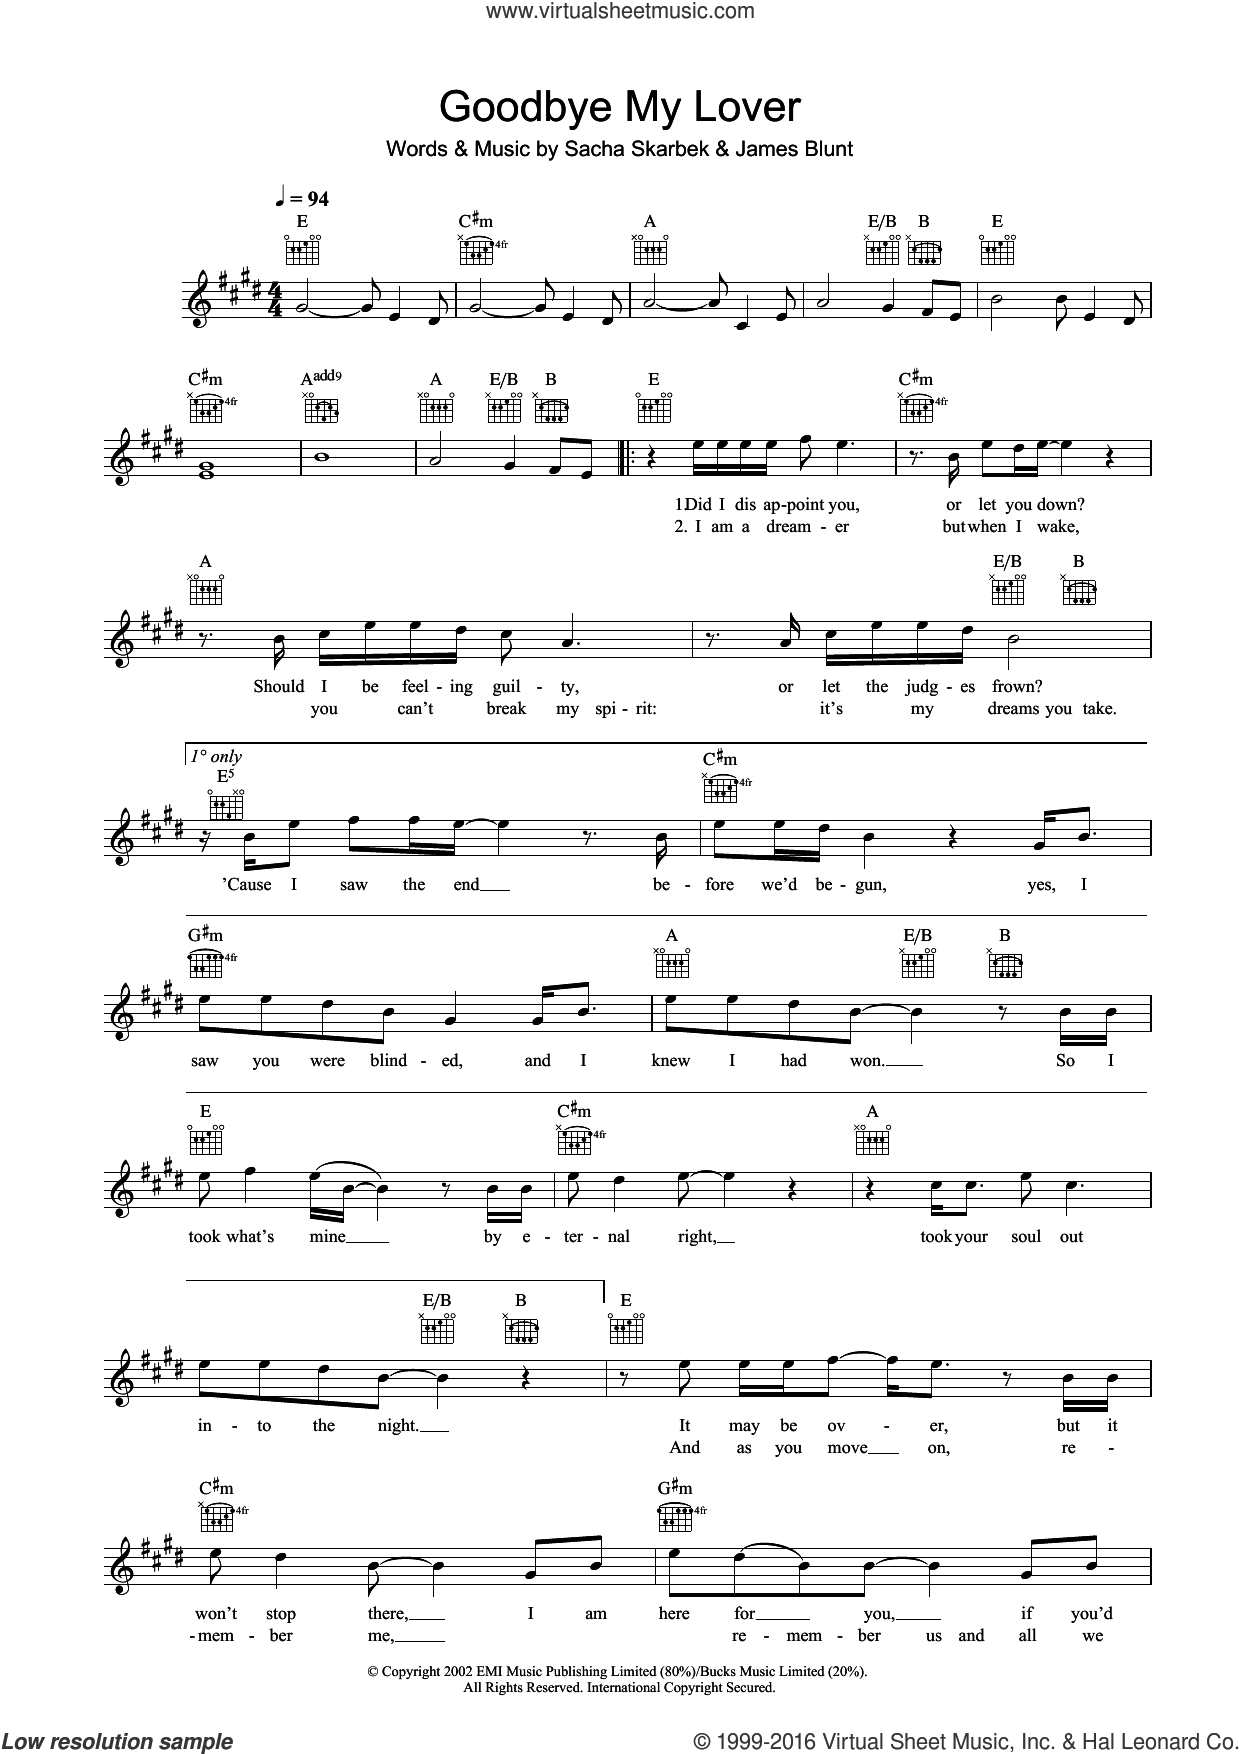 Goodbye My Lover sheet music for voice and other instruments (fake book) by James Blunt and Sacha Skarbek, intermediate skill level